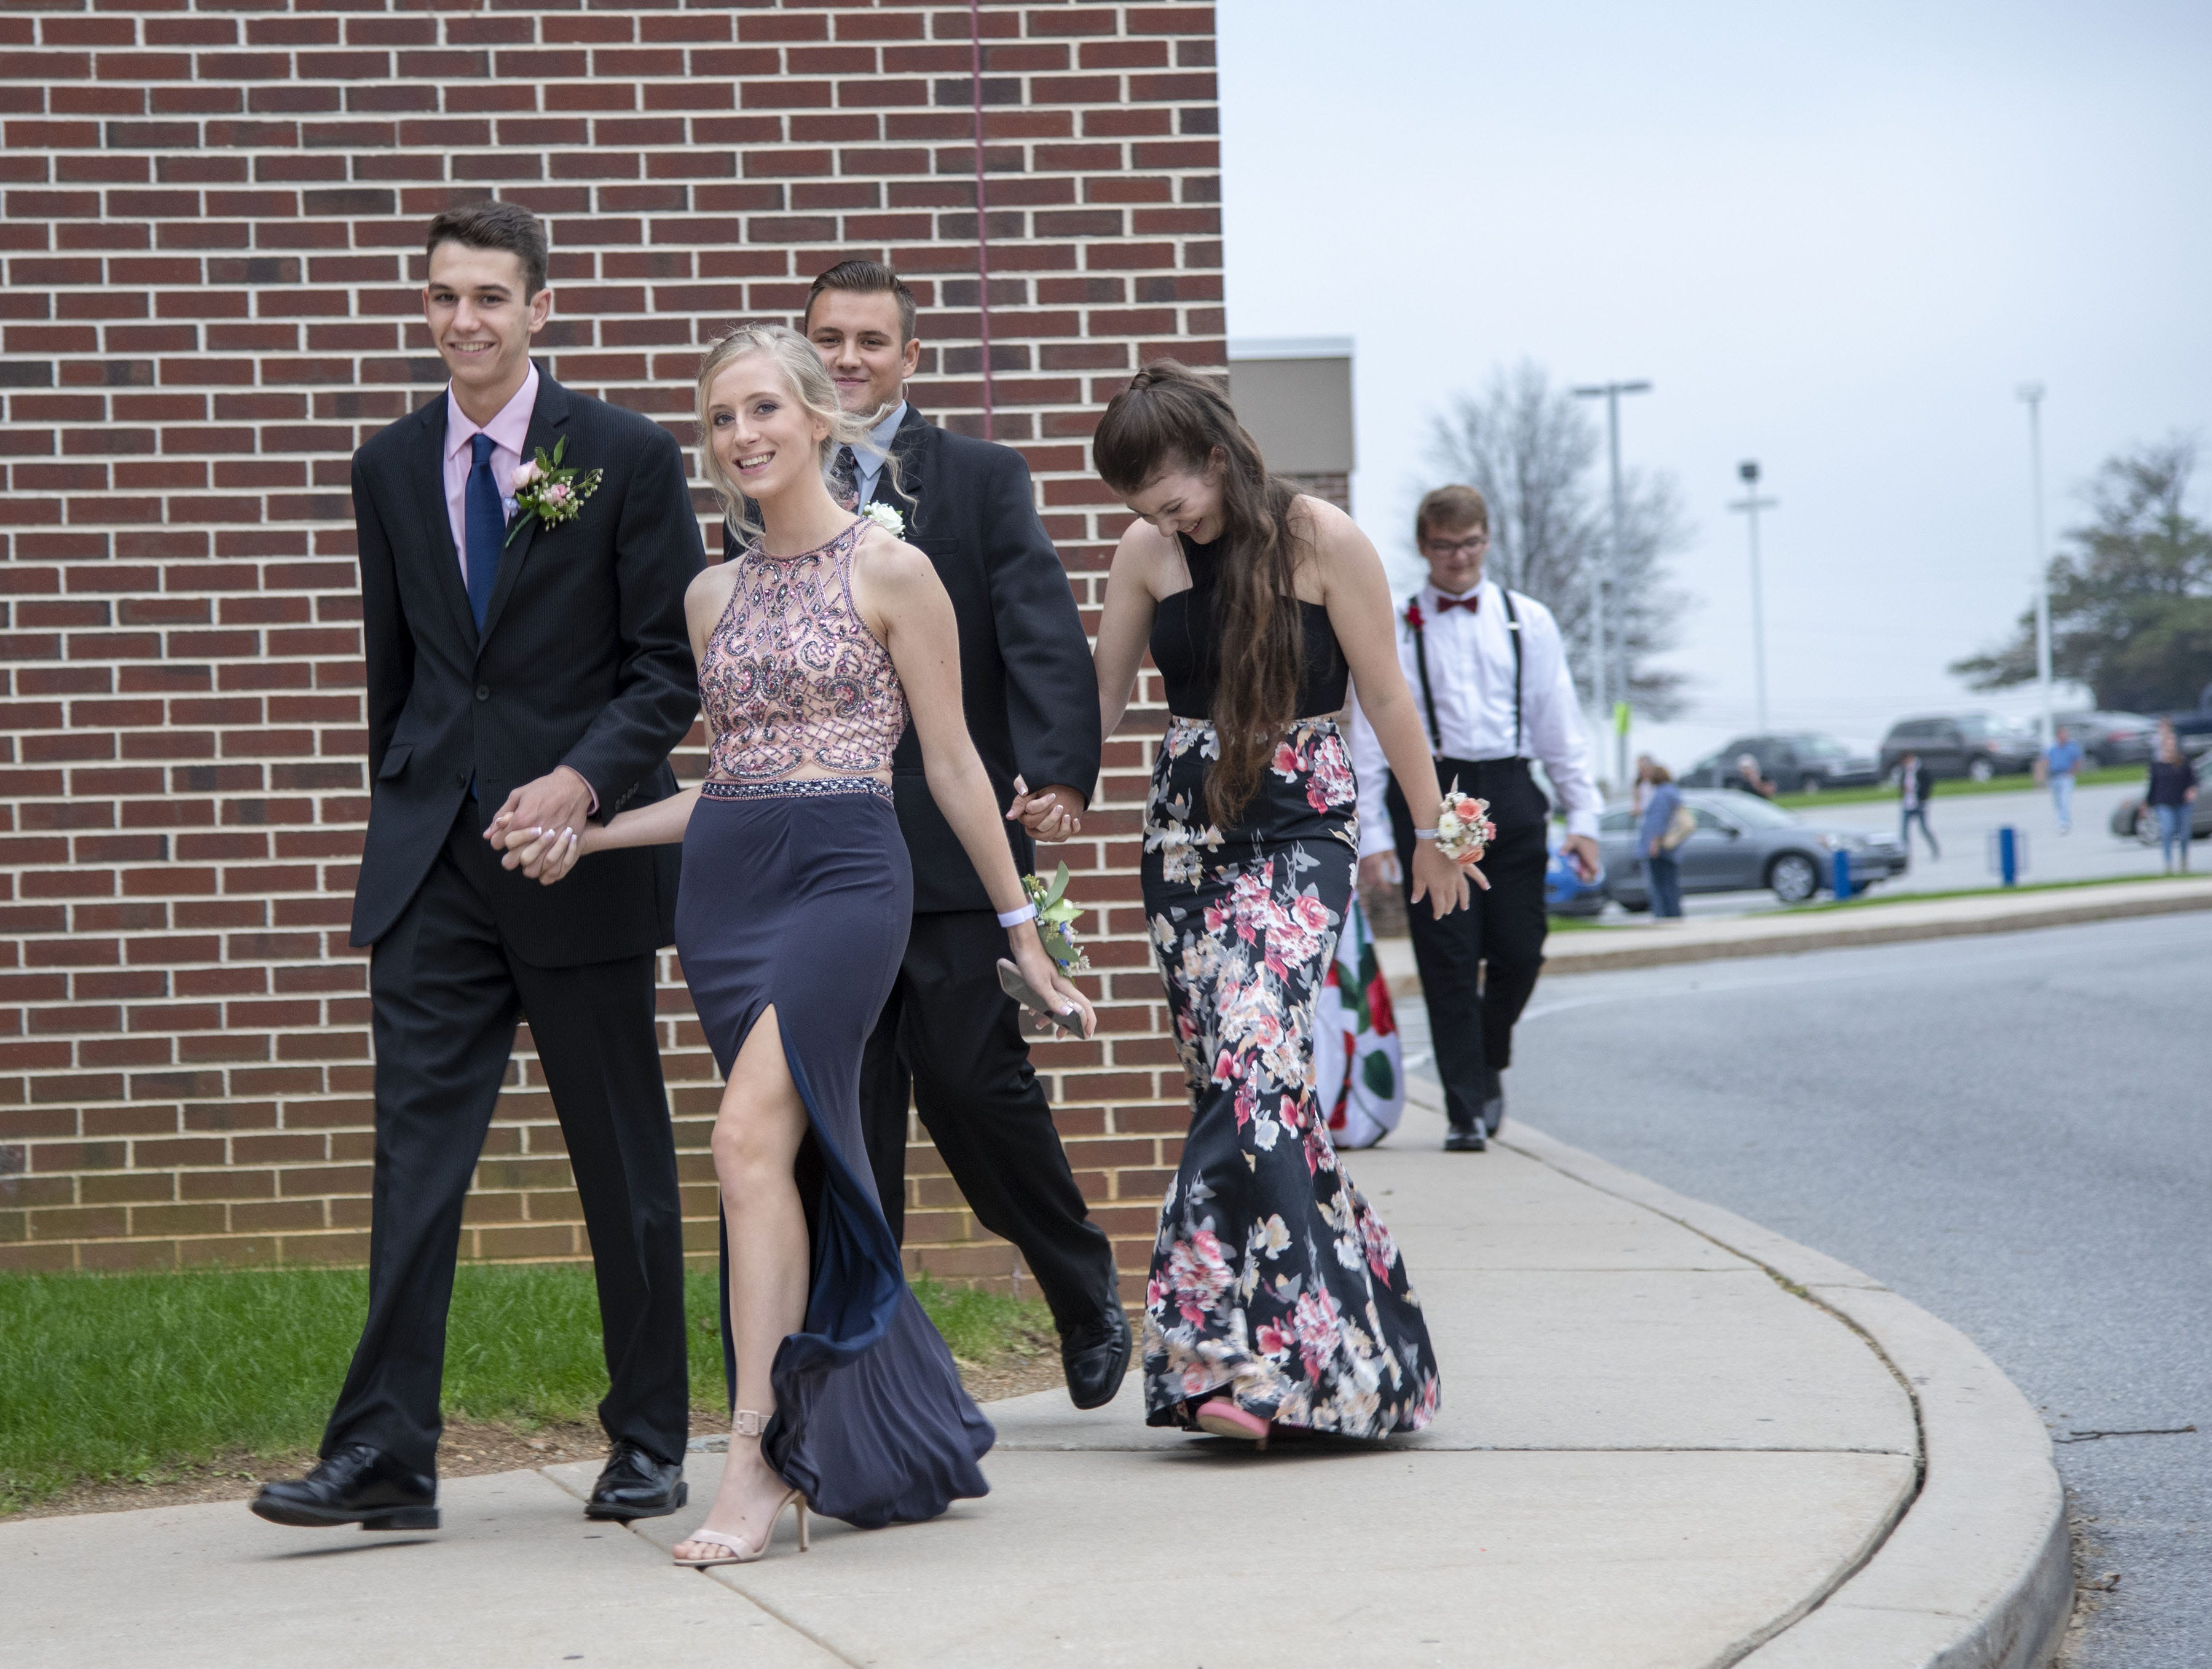 Students attend the 2018 Dallastown Area High School homecoming on Saturday, Oct. 06, 2018.